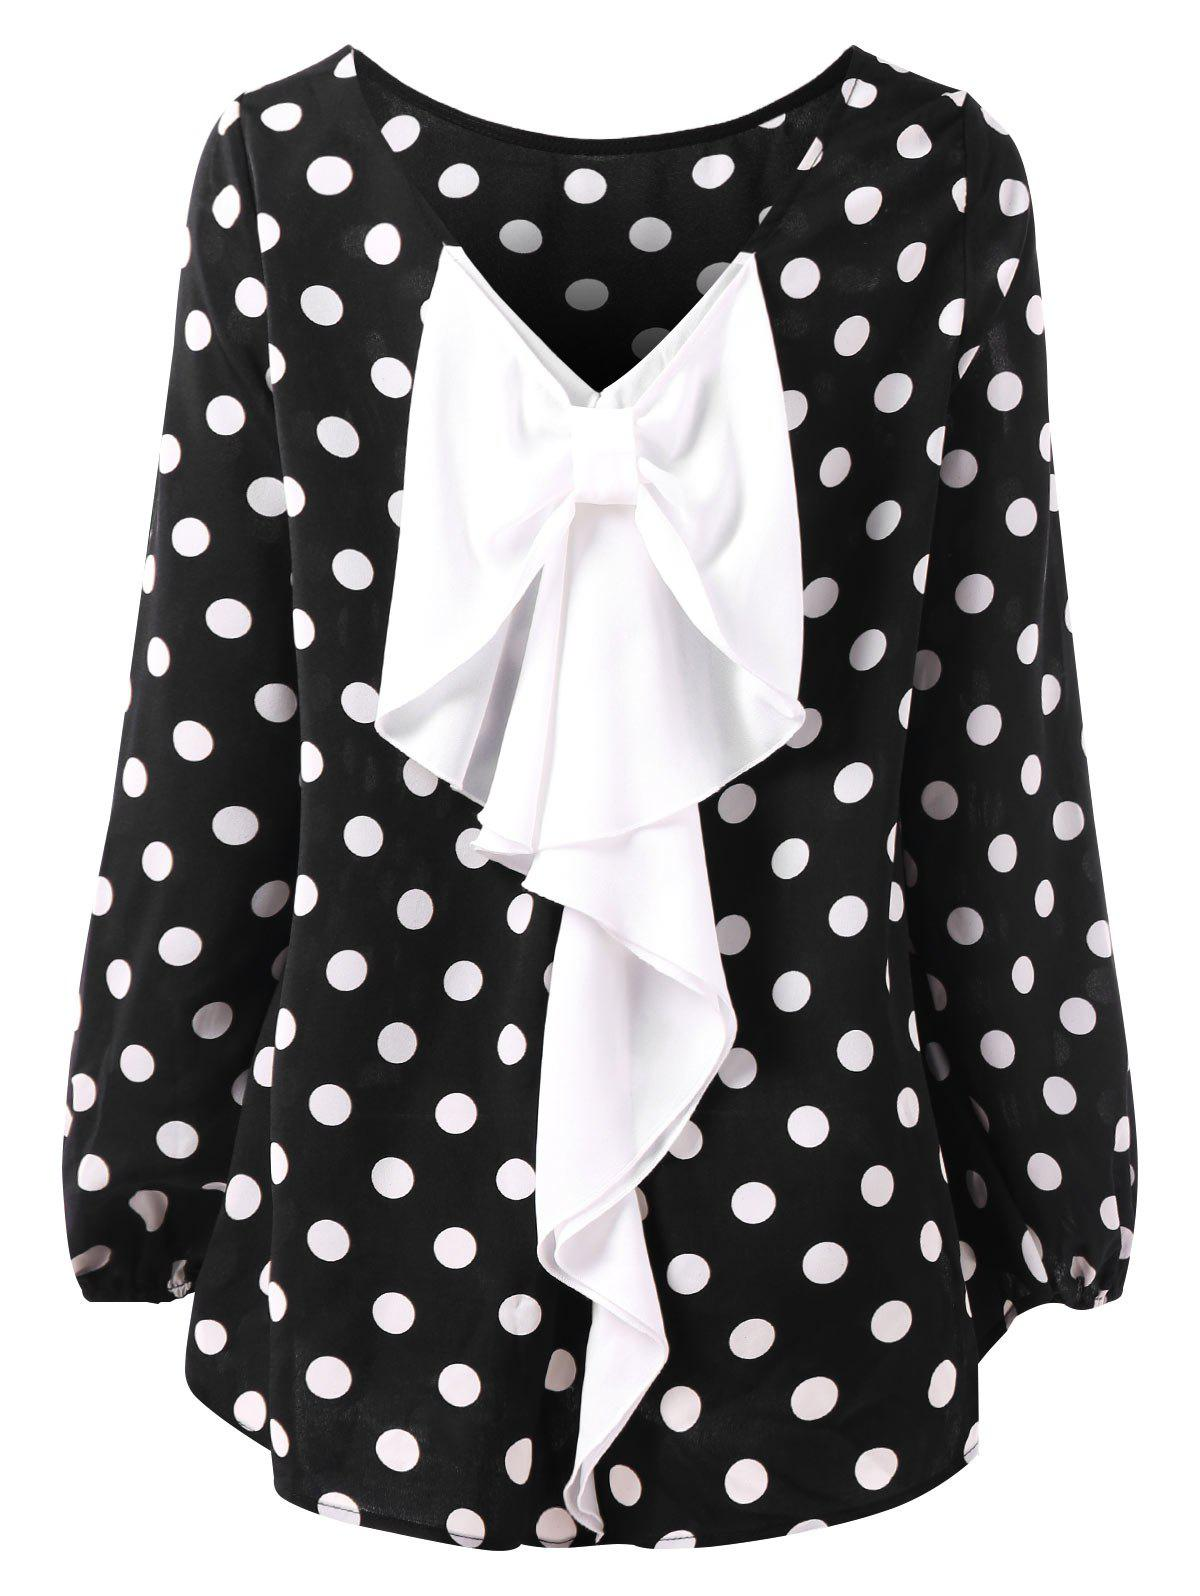 Affordable Dotted High Low Contrast Bowknot Blouse